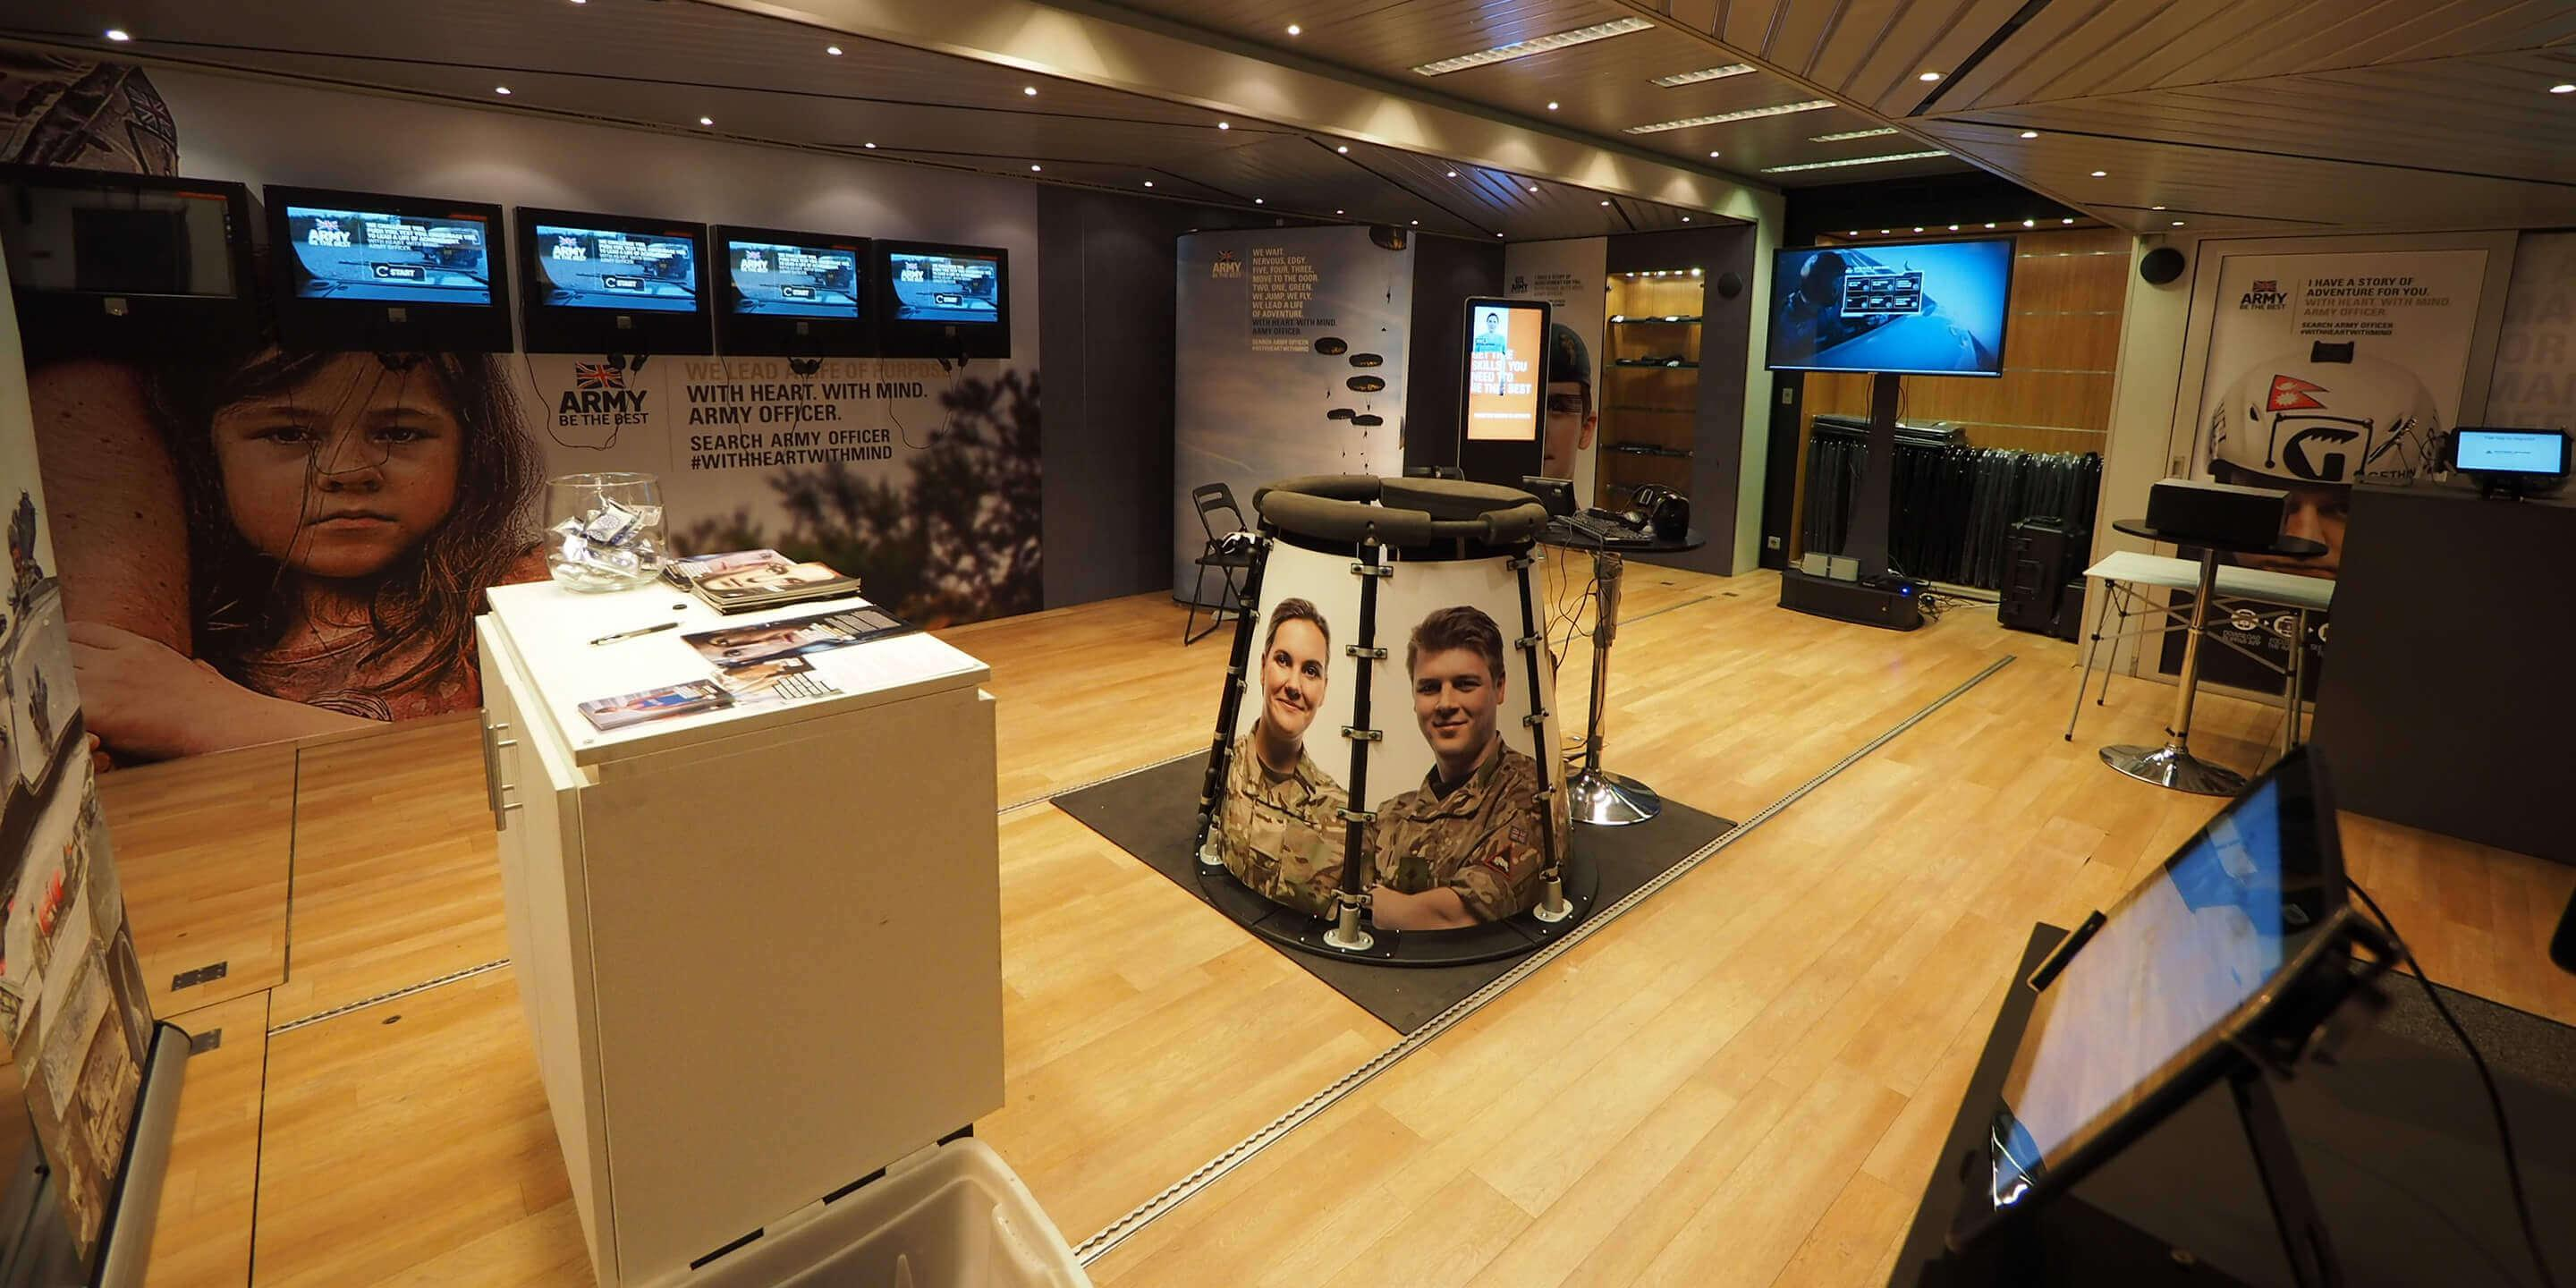 Army Exhibition Trailer interior